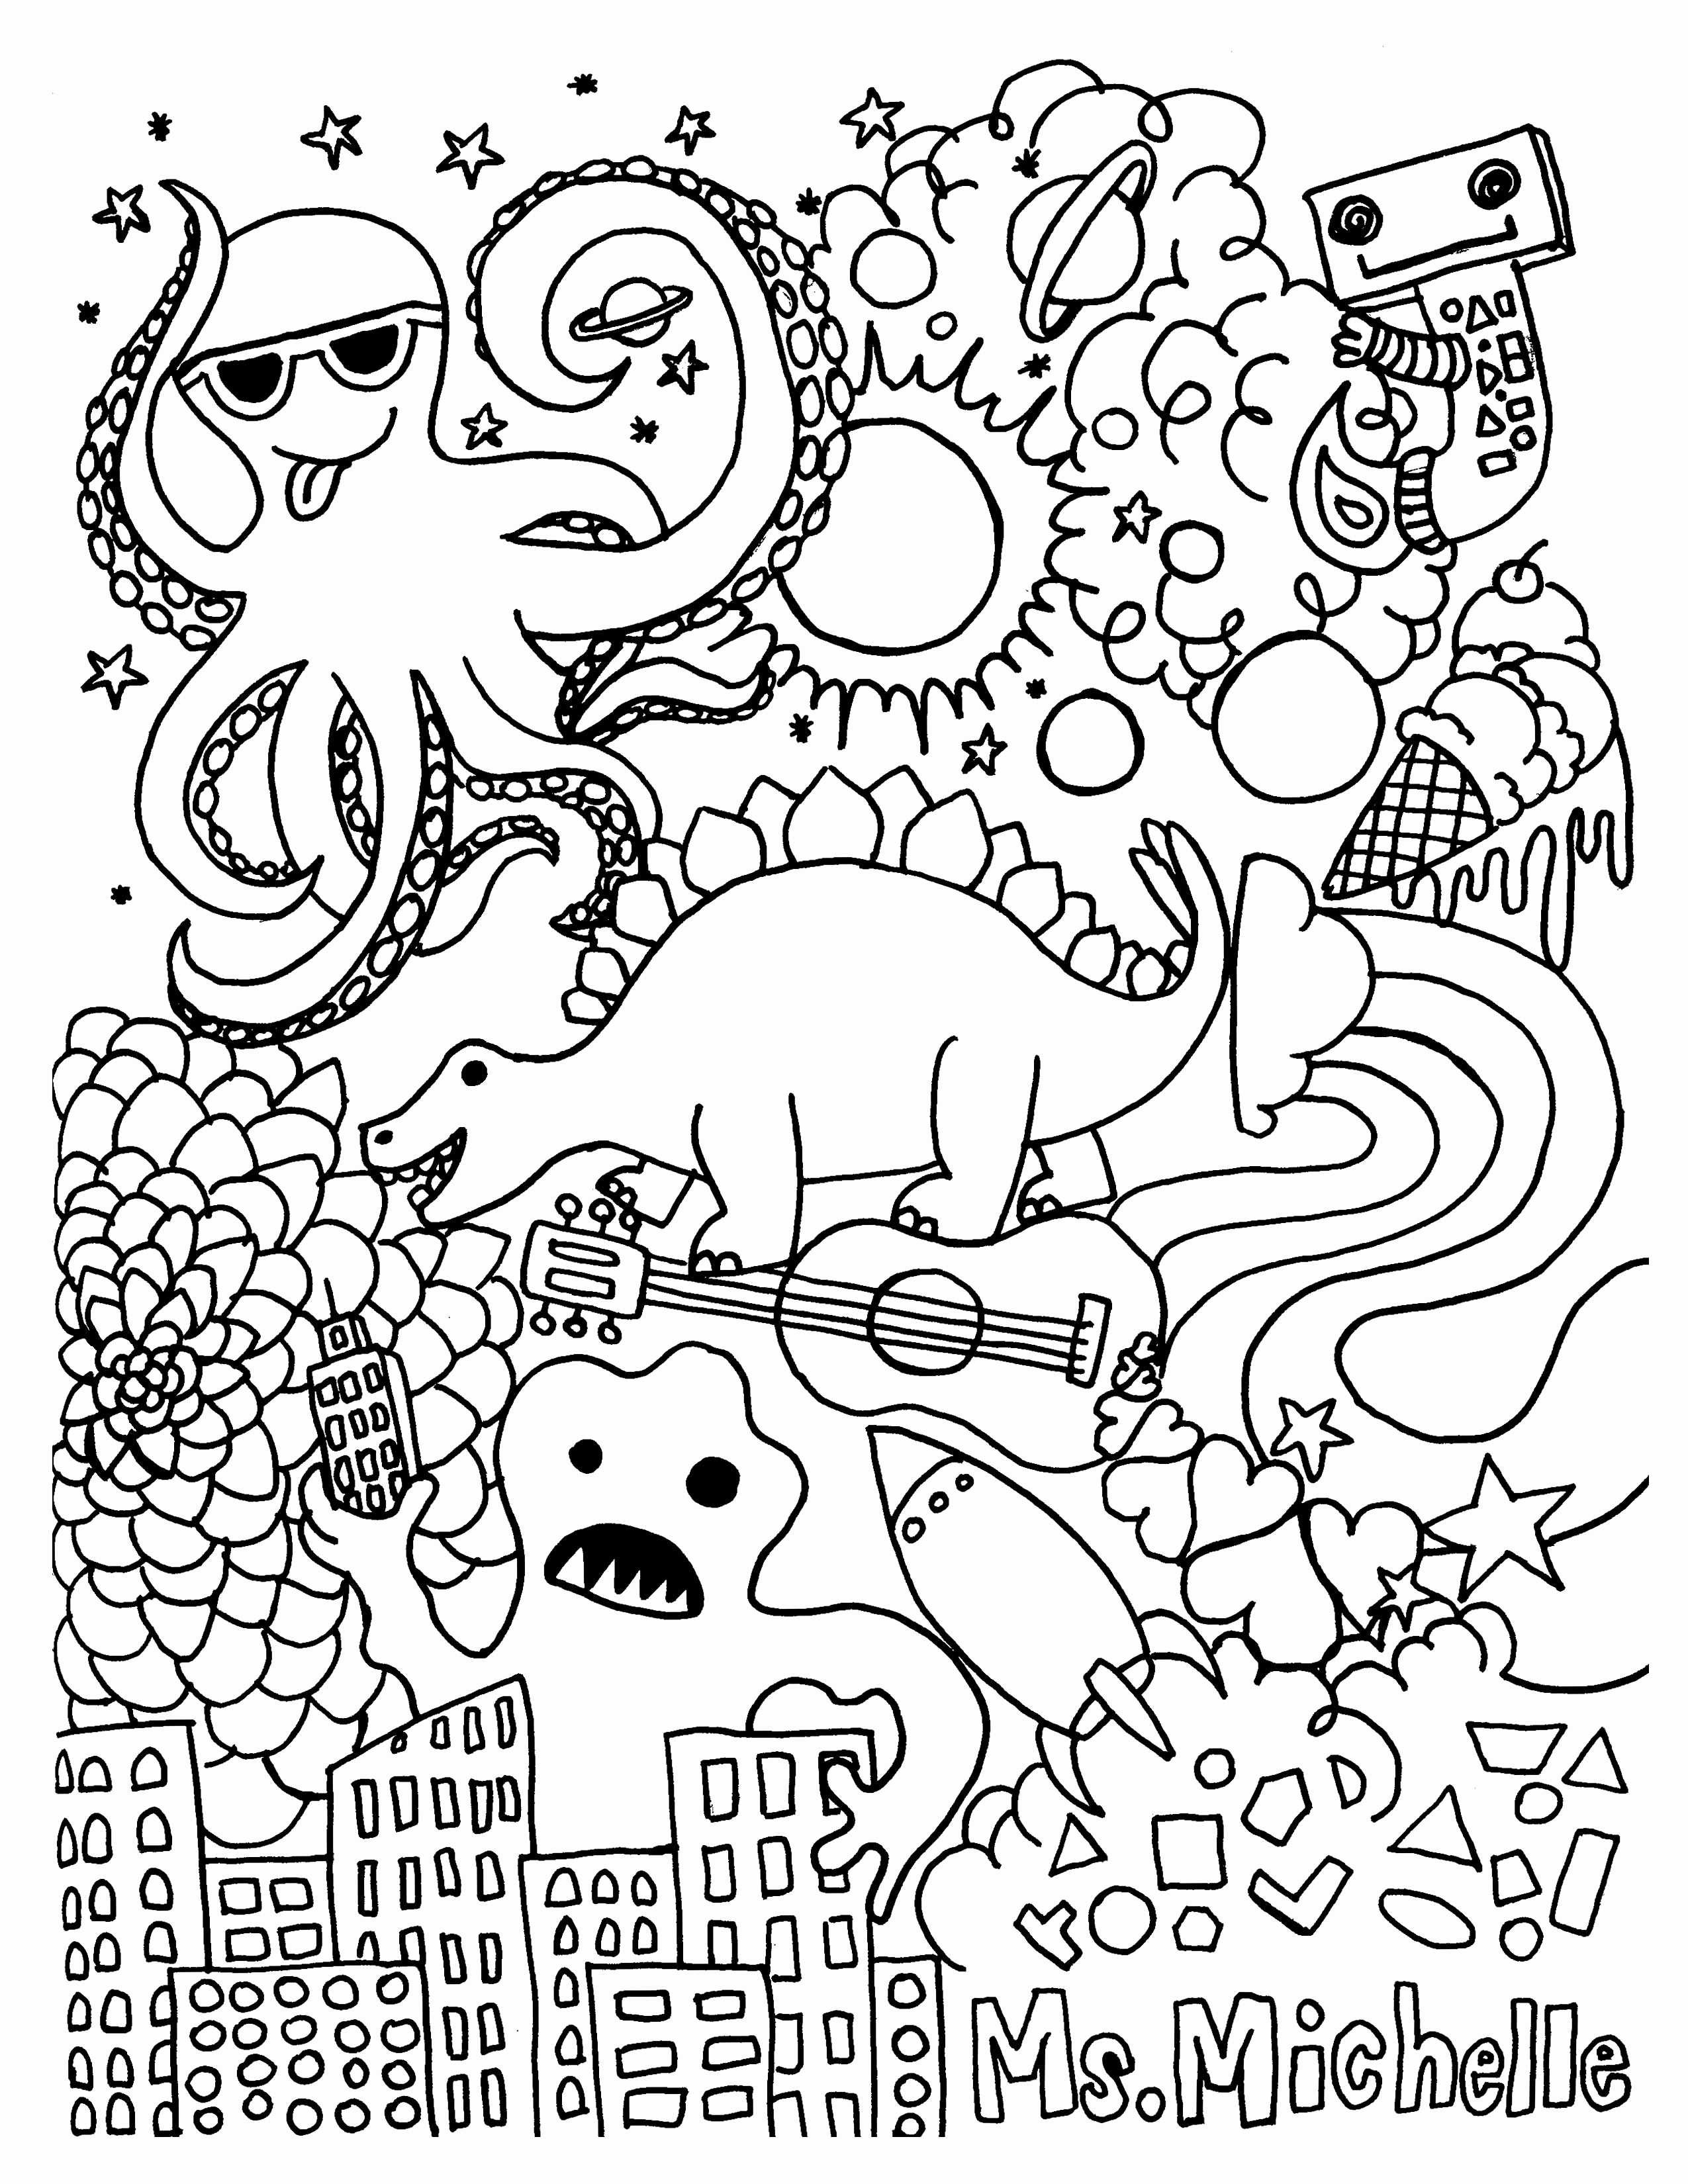 nickelodian coloring pages Download-Free Coloring Pages for Adults Halloween Free Coloring Pages Bible Awesome Free Coloring Pages for 4-i